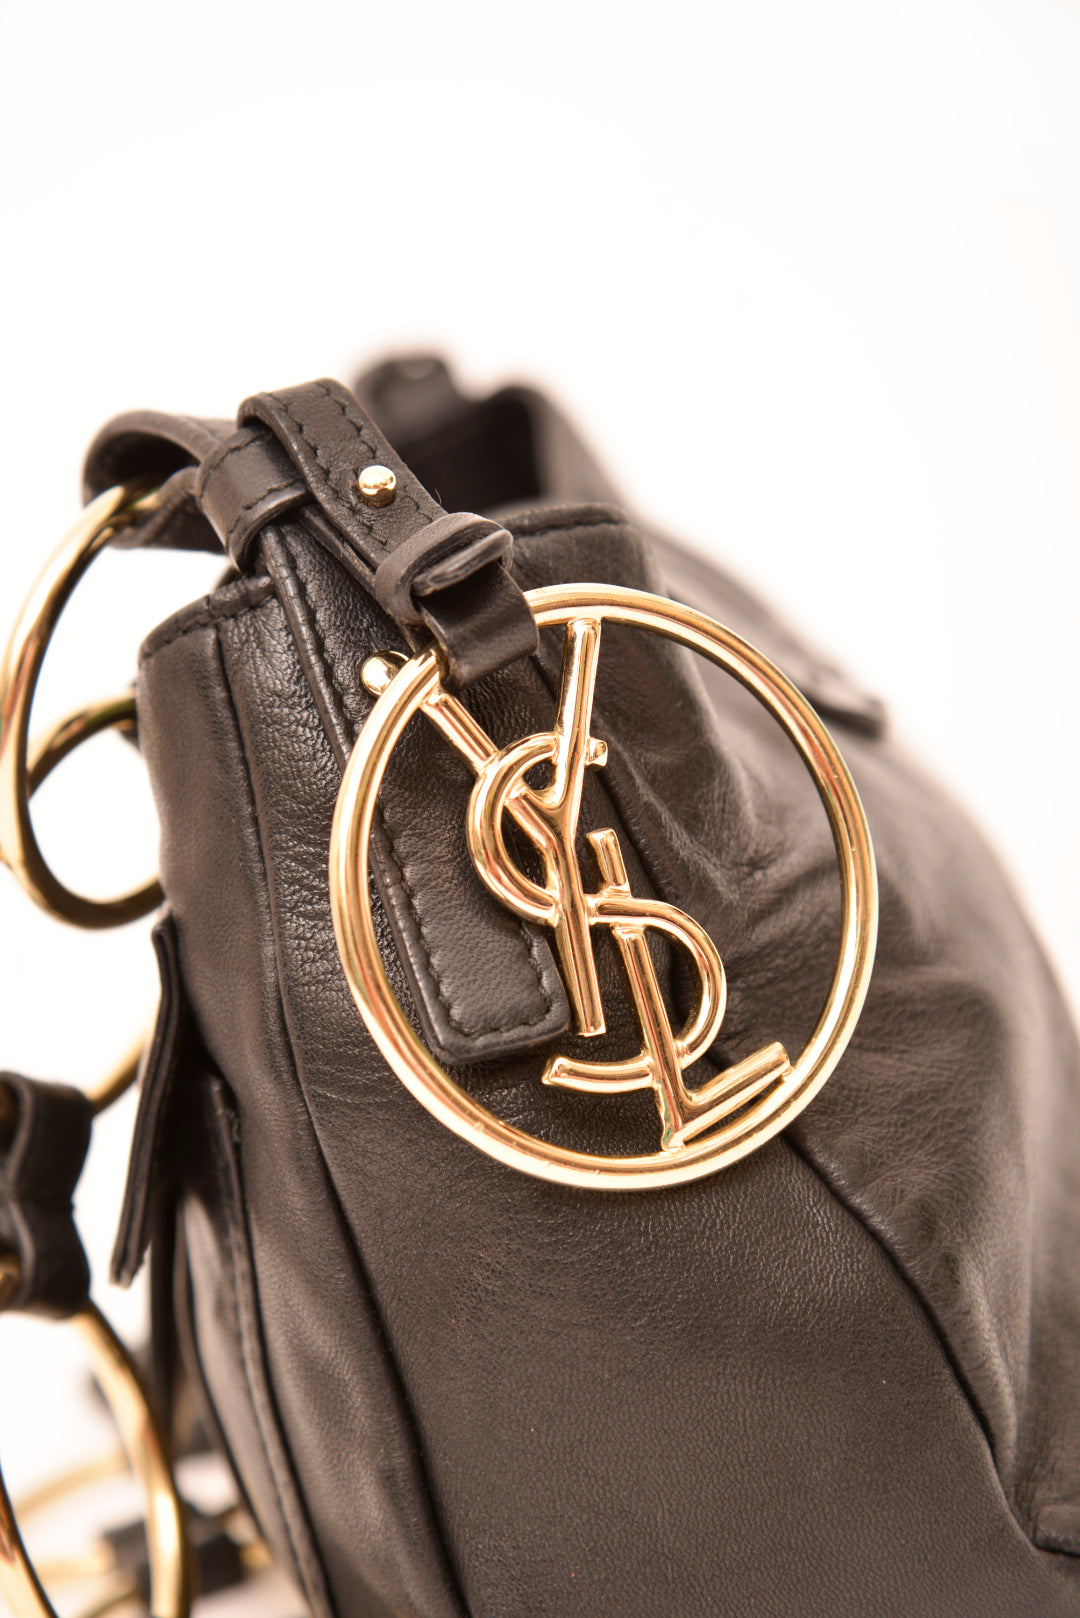 YSL Chain Loop Hangbag